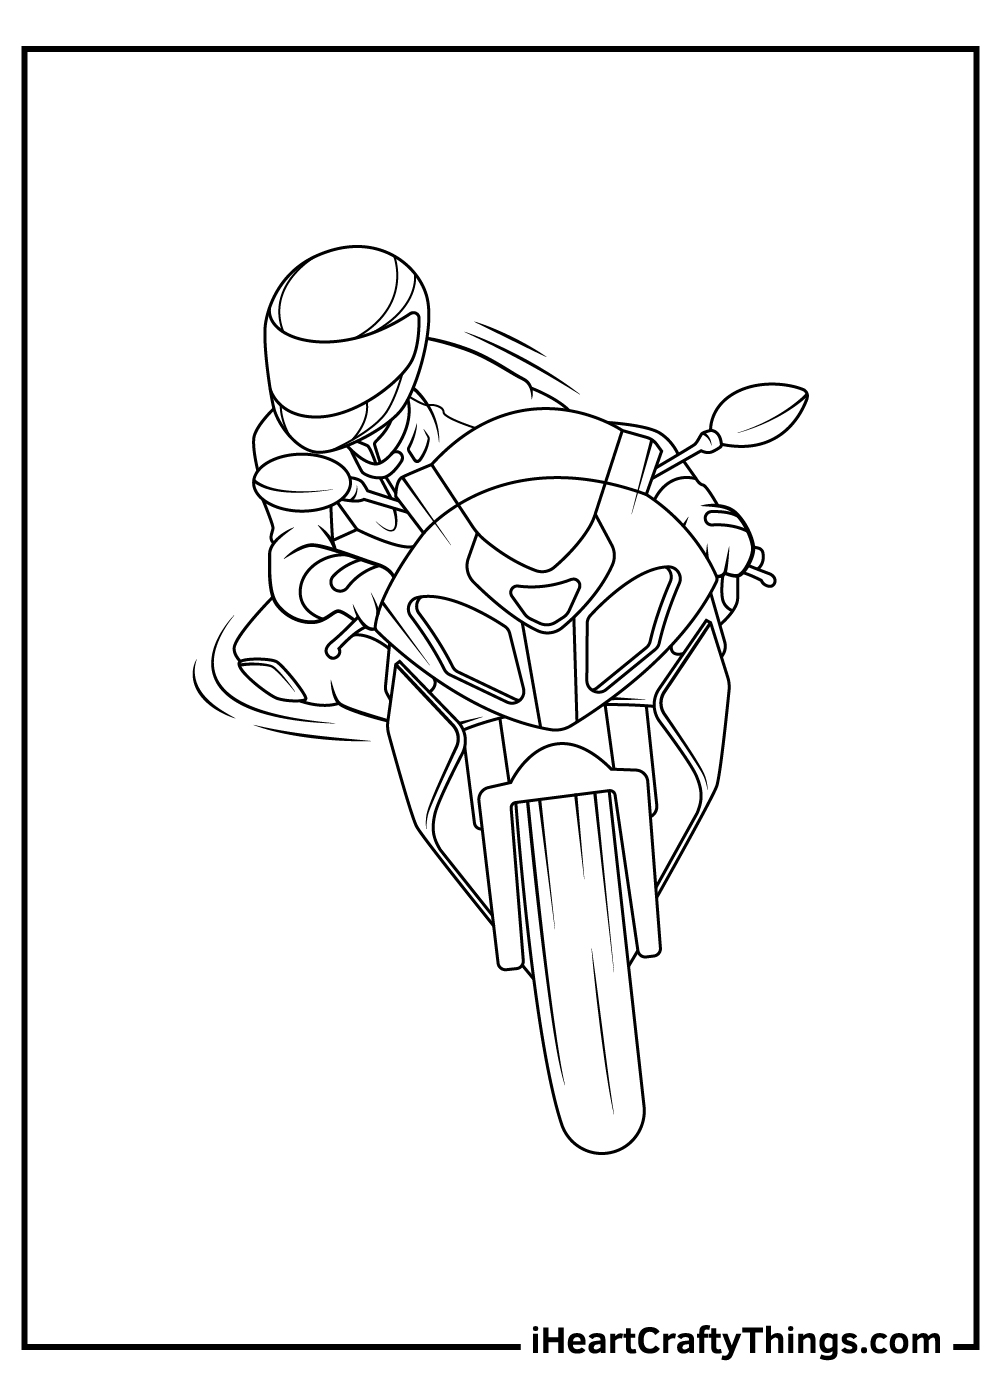 racing motorcycle coloring pages